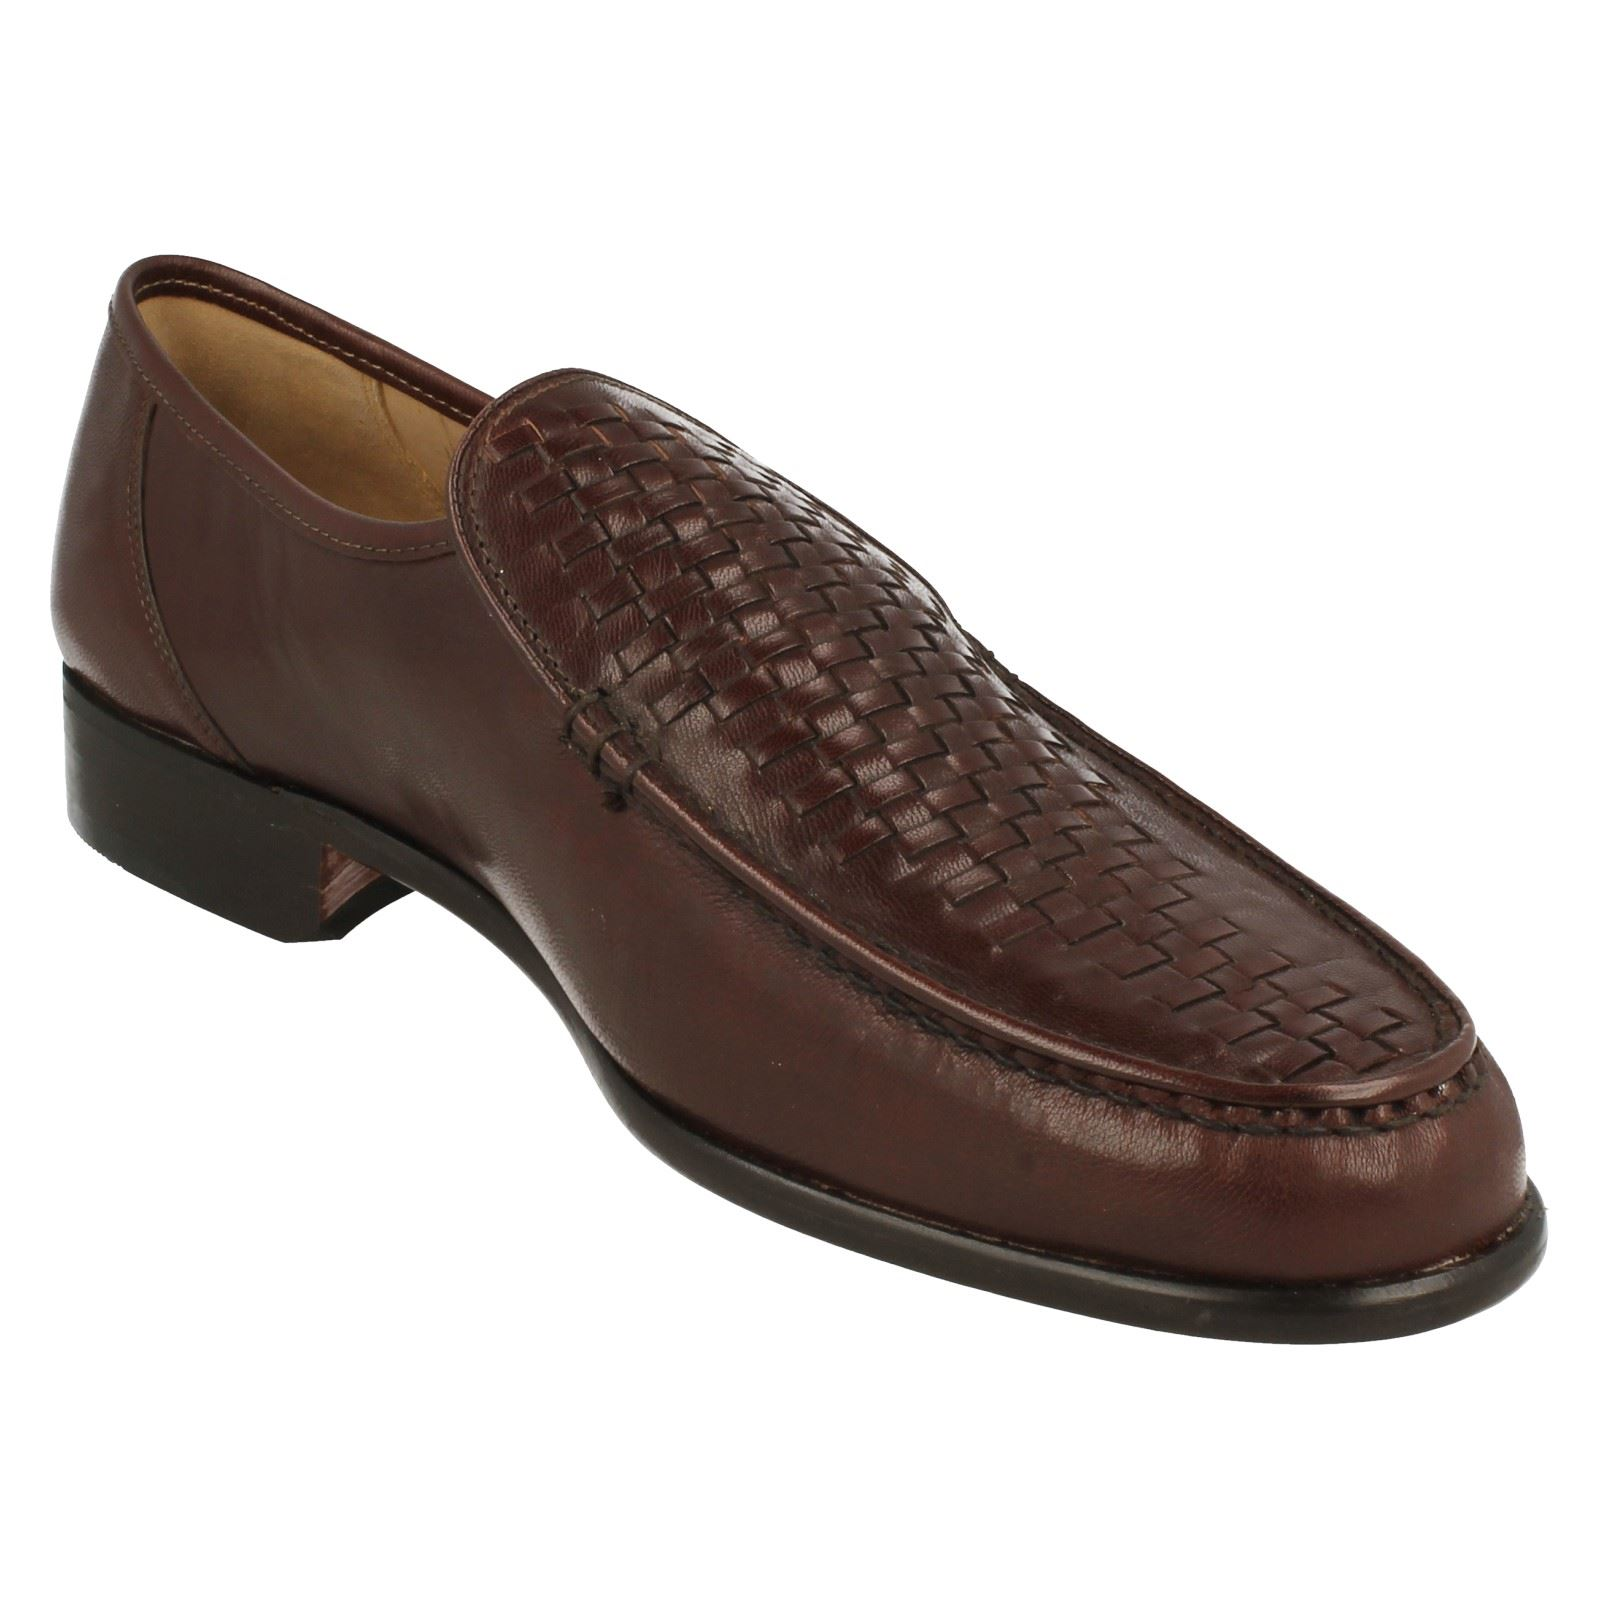 Mens Grenson Formal Slip On On On Shoes Redgrave 2460a7